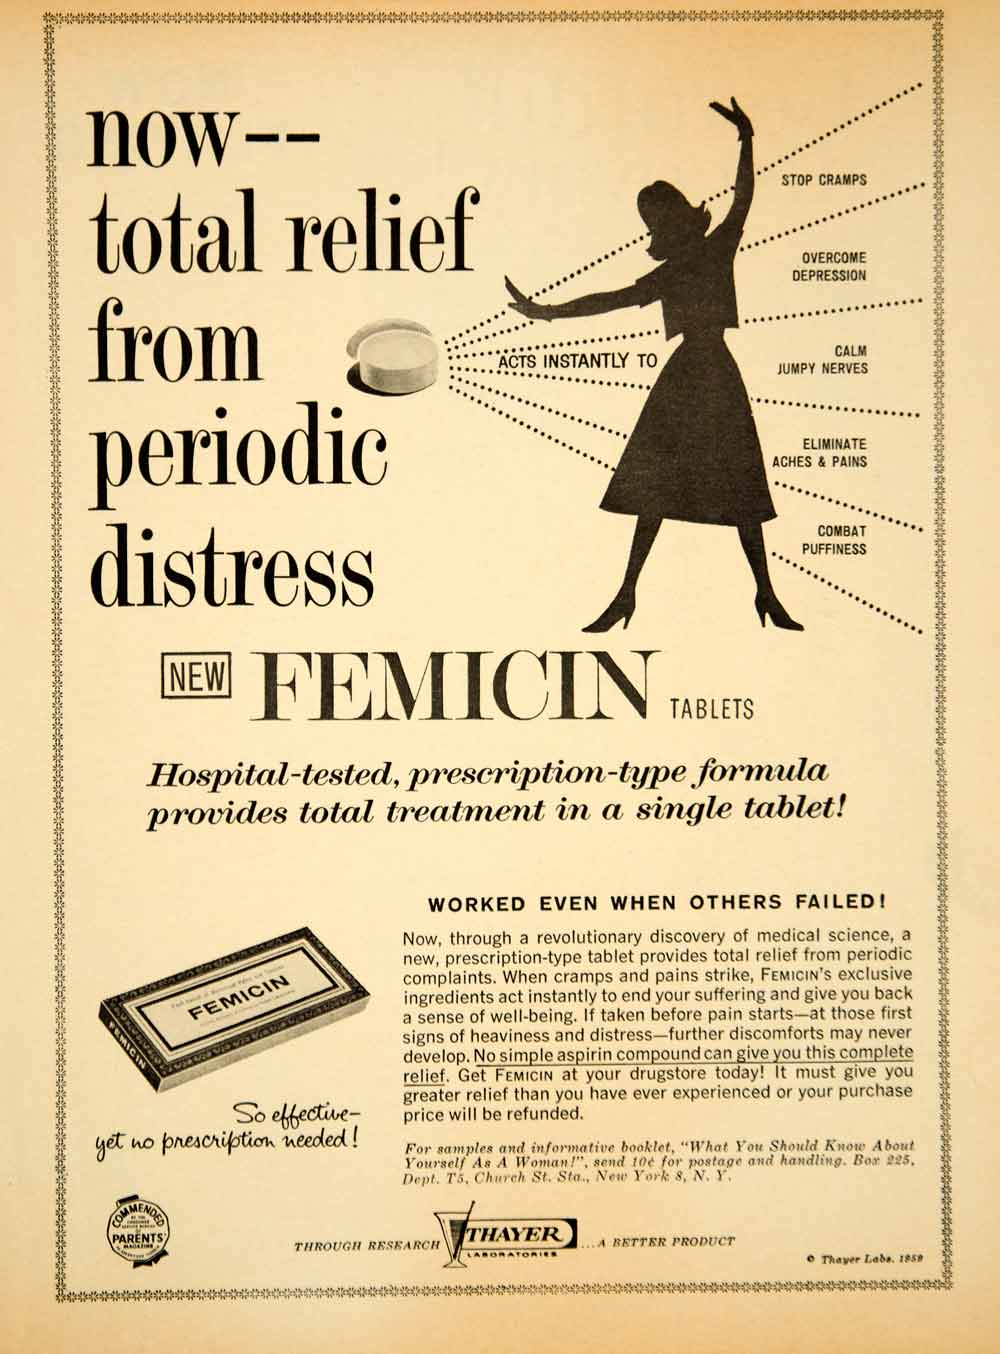 1959 Ad Femicin Tablets Pill Women Depression Cramps Pain Remedy OTC Thayer YPP5